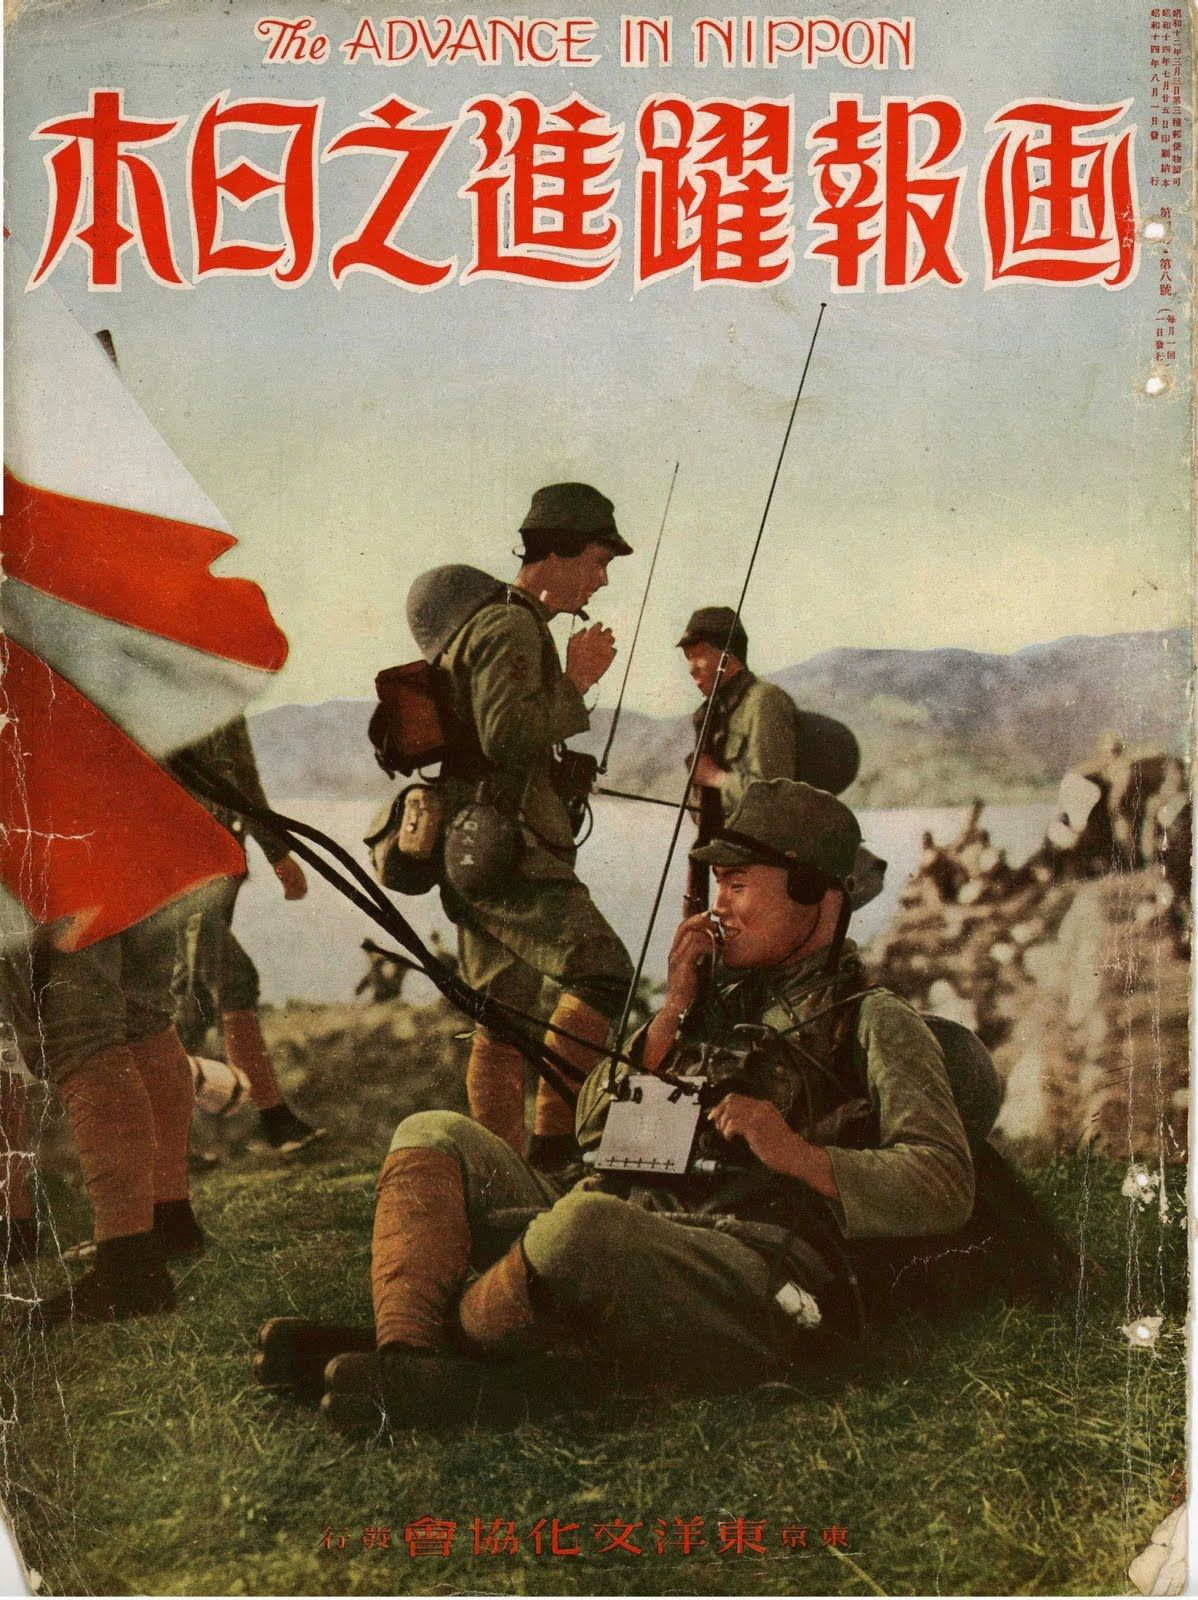 The Cover of the Japanese Pictorial Magazine, Yakushin-no-Nippon ...